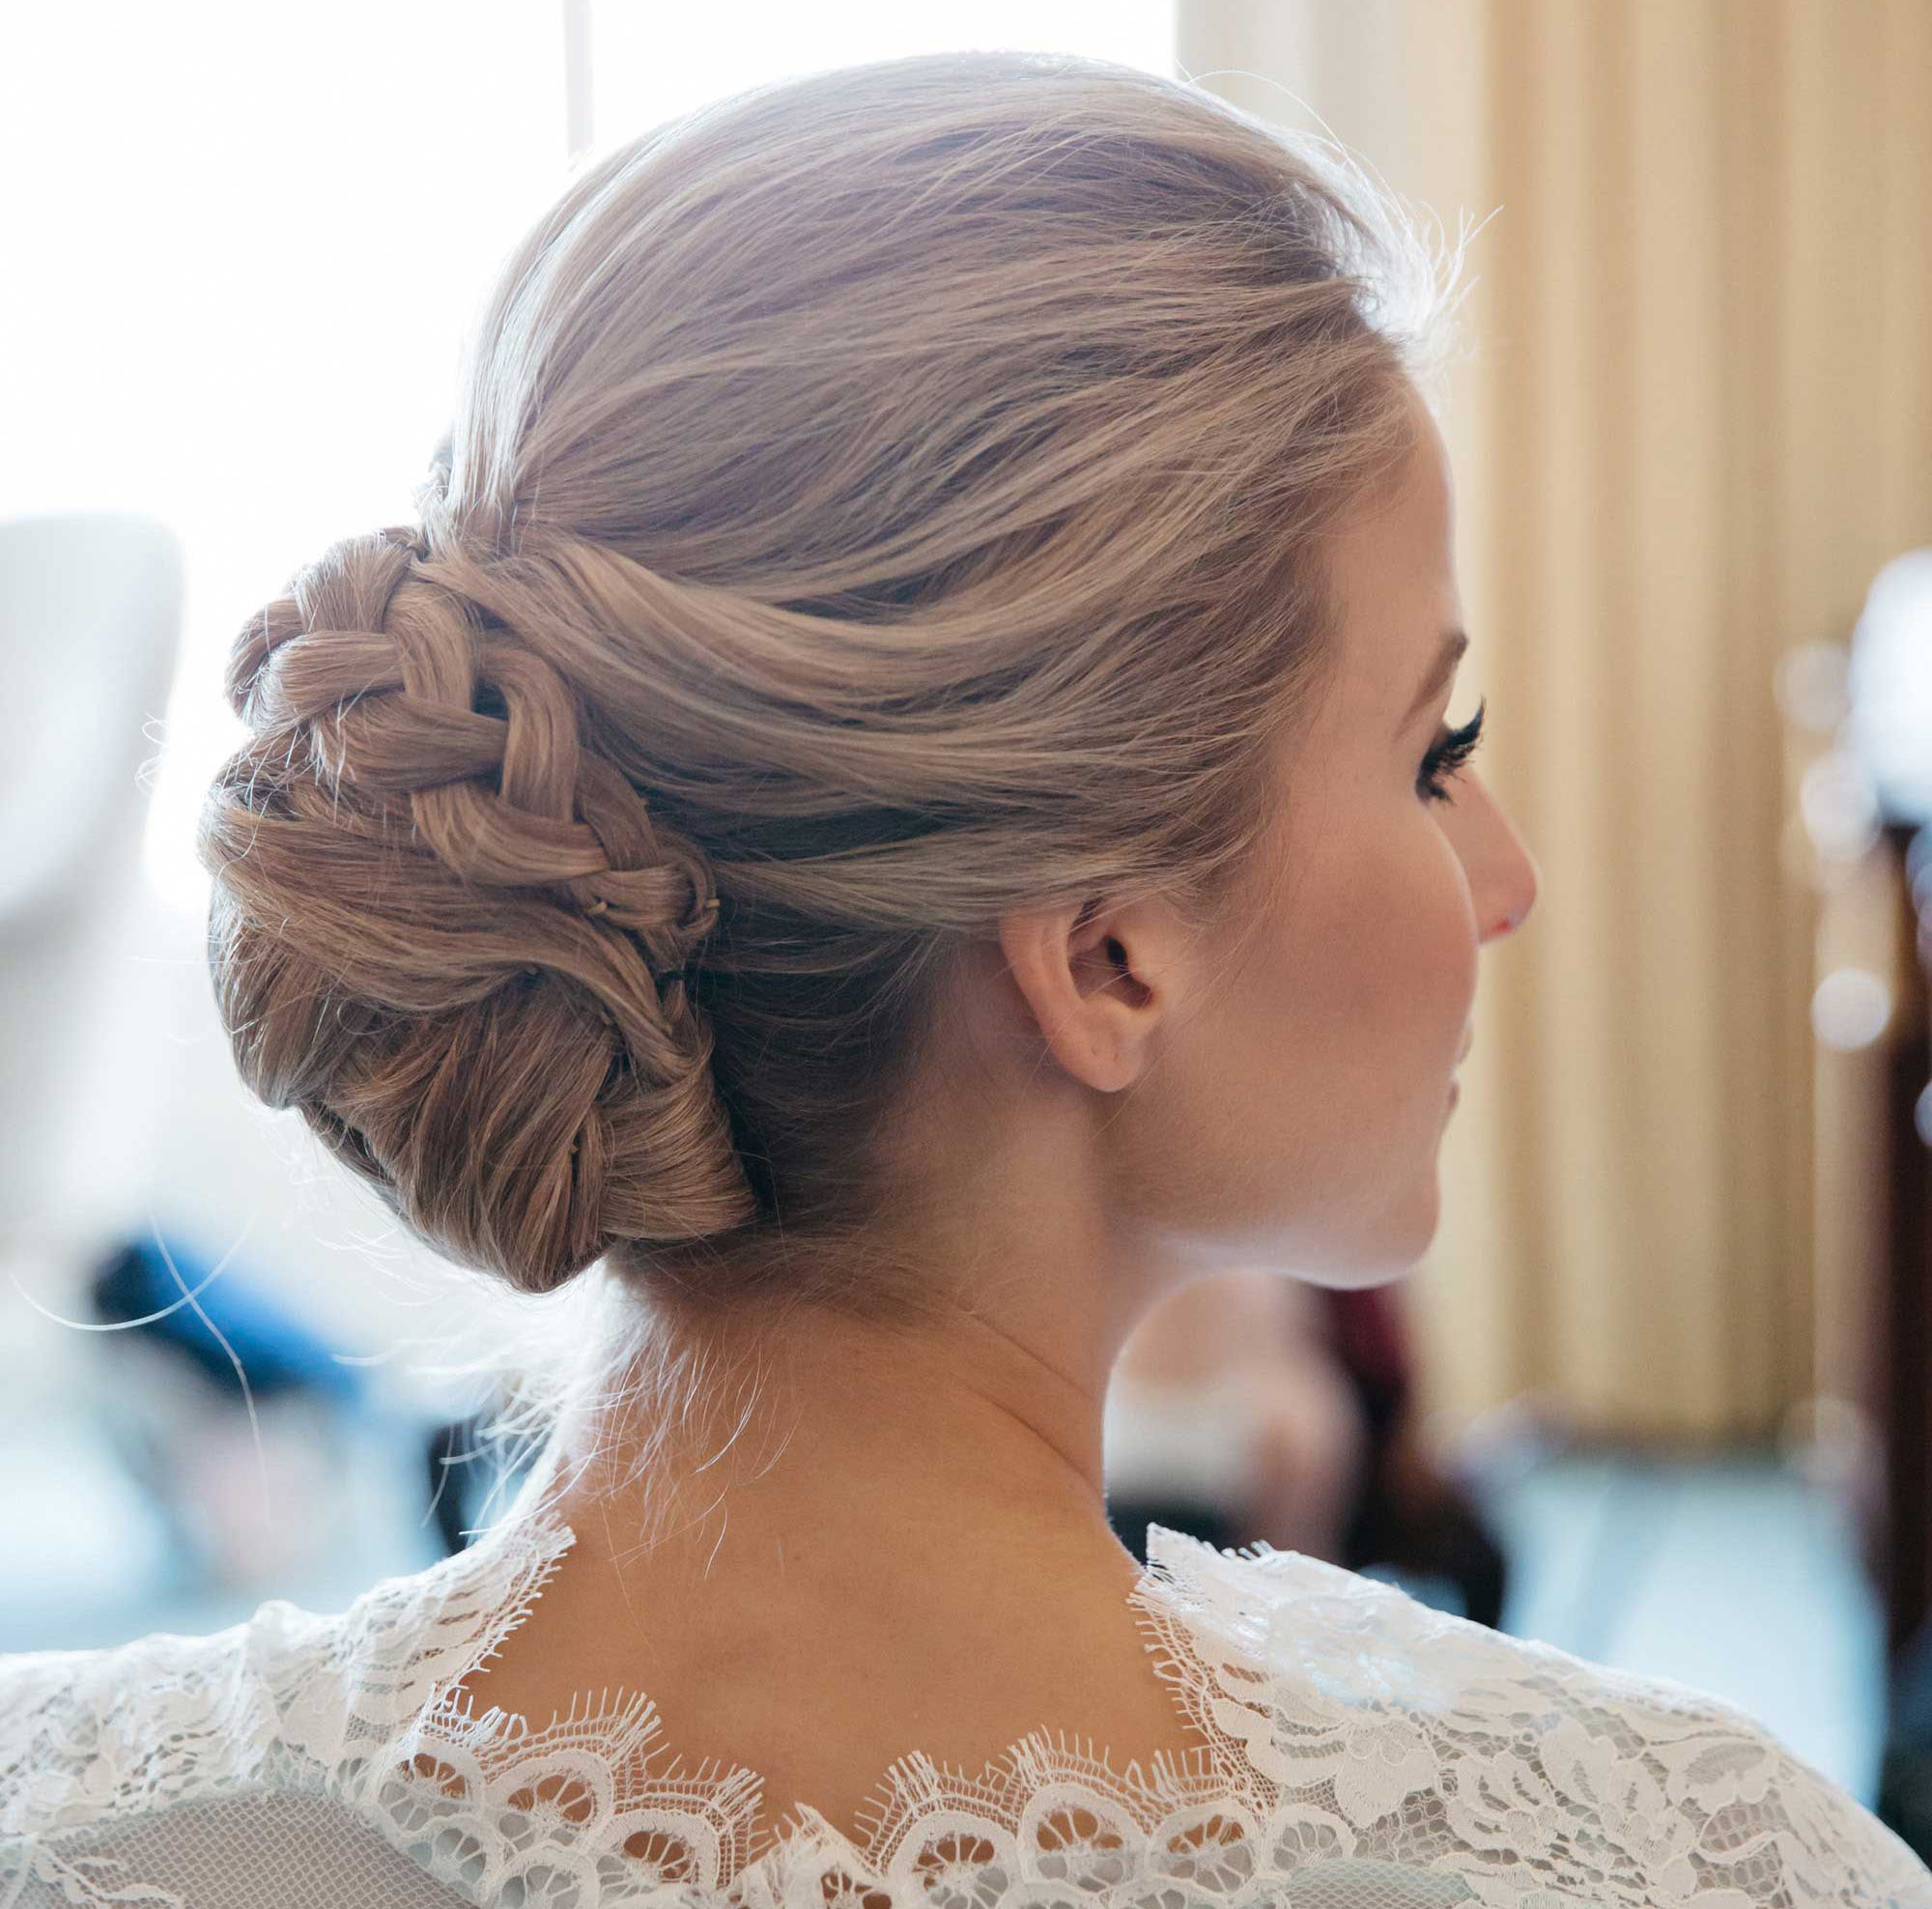 Wedding Hairstyle: Braided Hairstyles: 5 Ideas For Your Wedding Look